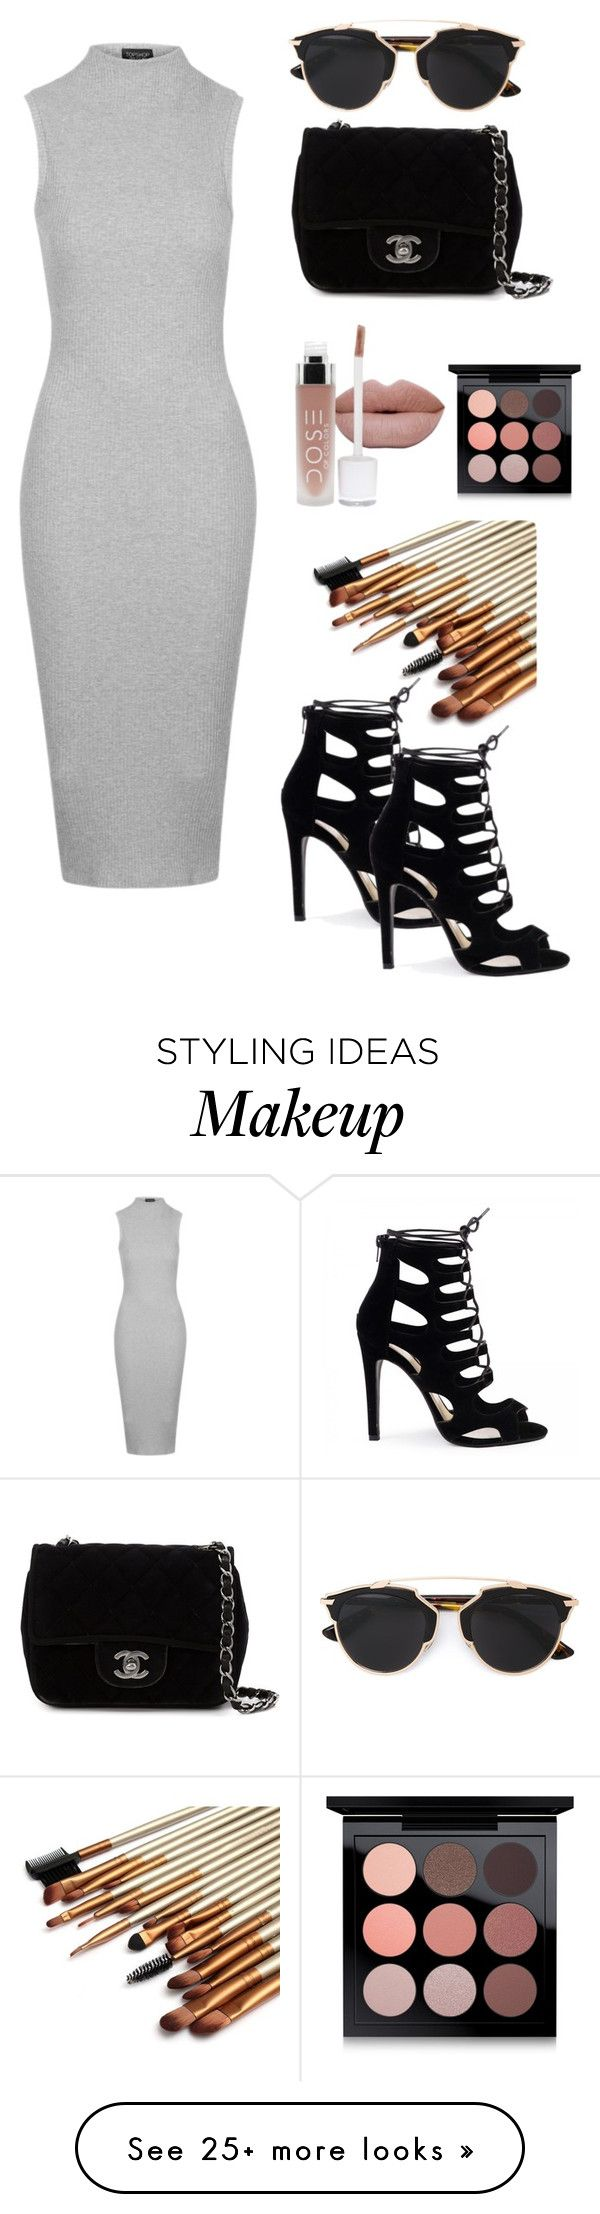 """""""Untitled #10"""" by jessicabongalon on Polyvore featuring Topshop, Christian Dior, Chanel and MAC Cosmetics"""